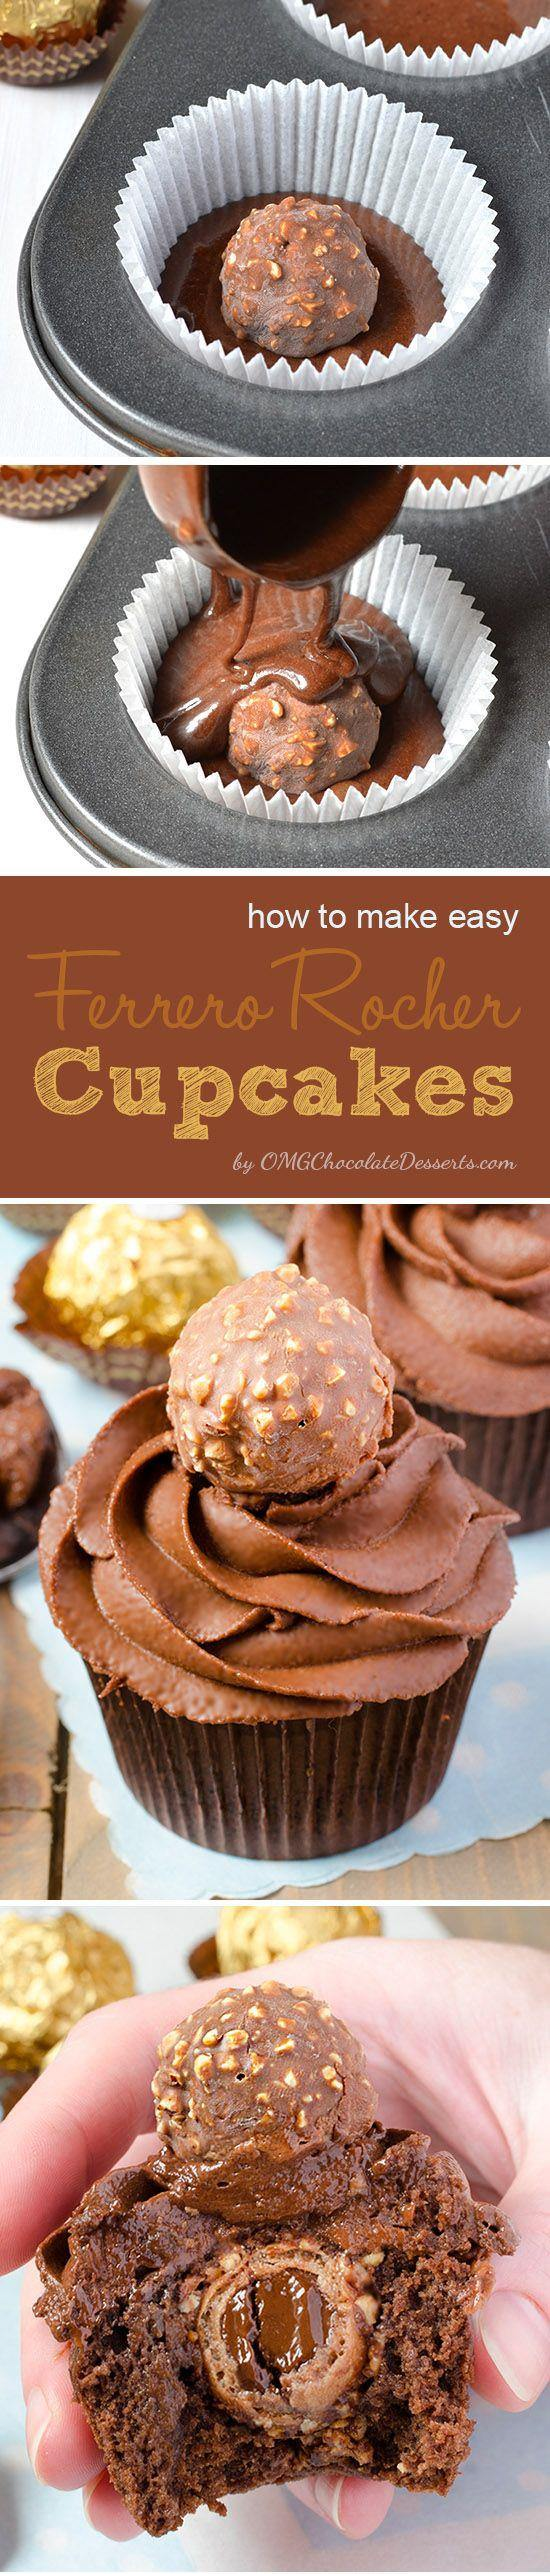 Before you find the instructions , what you will find is the ultimateguide how to keep at least half of these beautiful Ferrero Rocher Cupcakes from potential attacks during their preparation :)